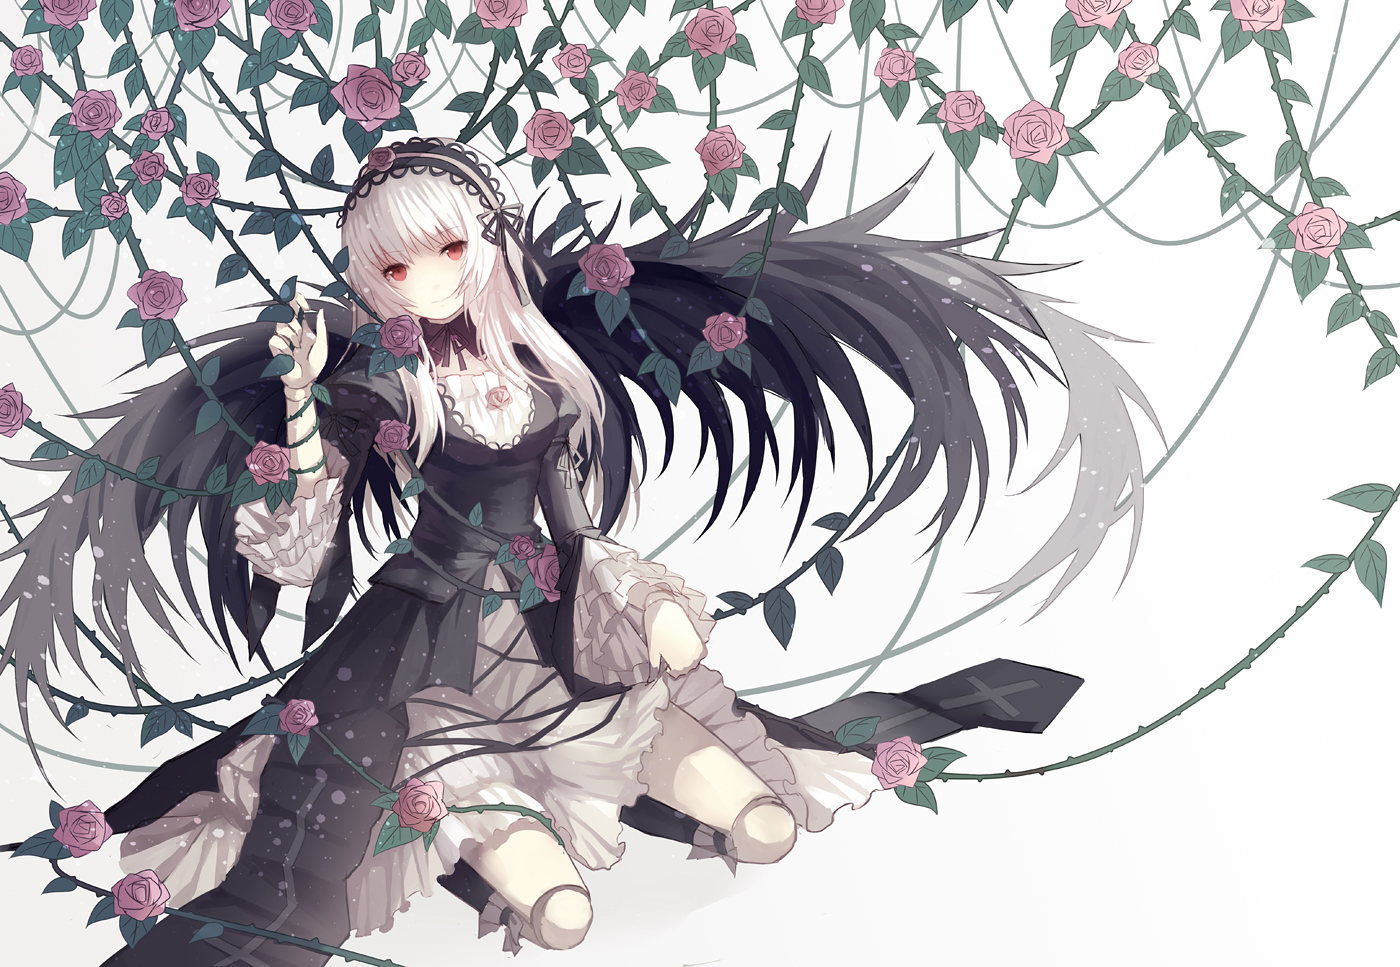 Suigintou Fan Art